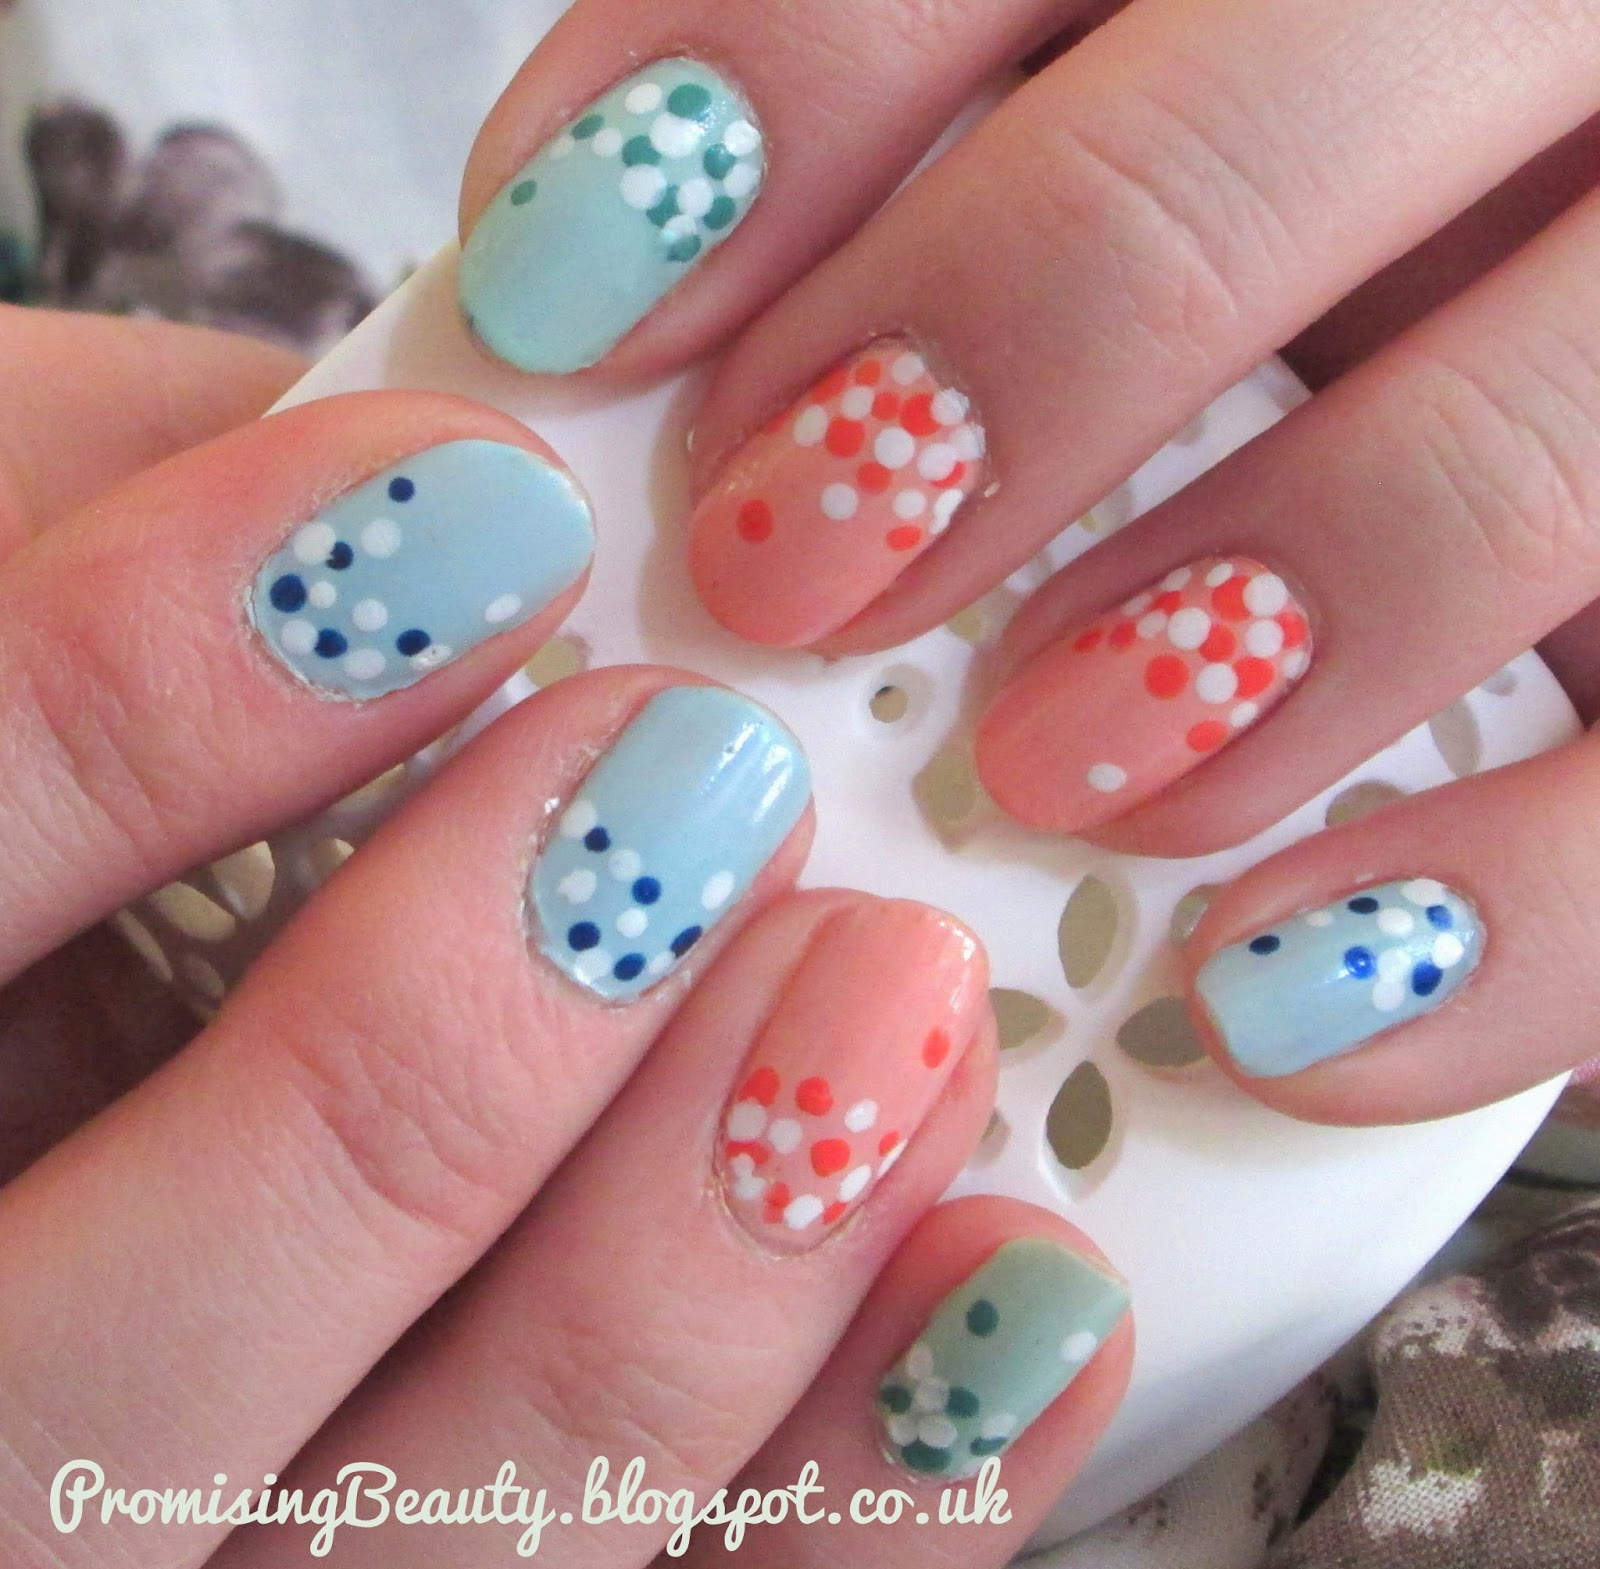 Summertime manicure, polka dots and spots in springtime pastel shades, mint green light blue and coral orange. Finished nail look. Nail art in pastel for spring and summer 2015 style and on trend. Nail trend.